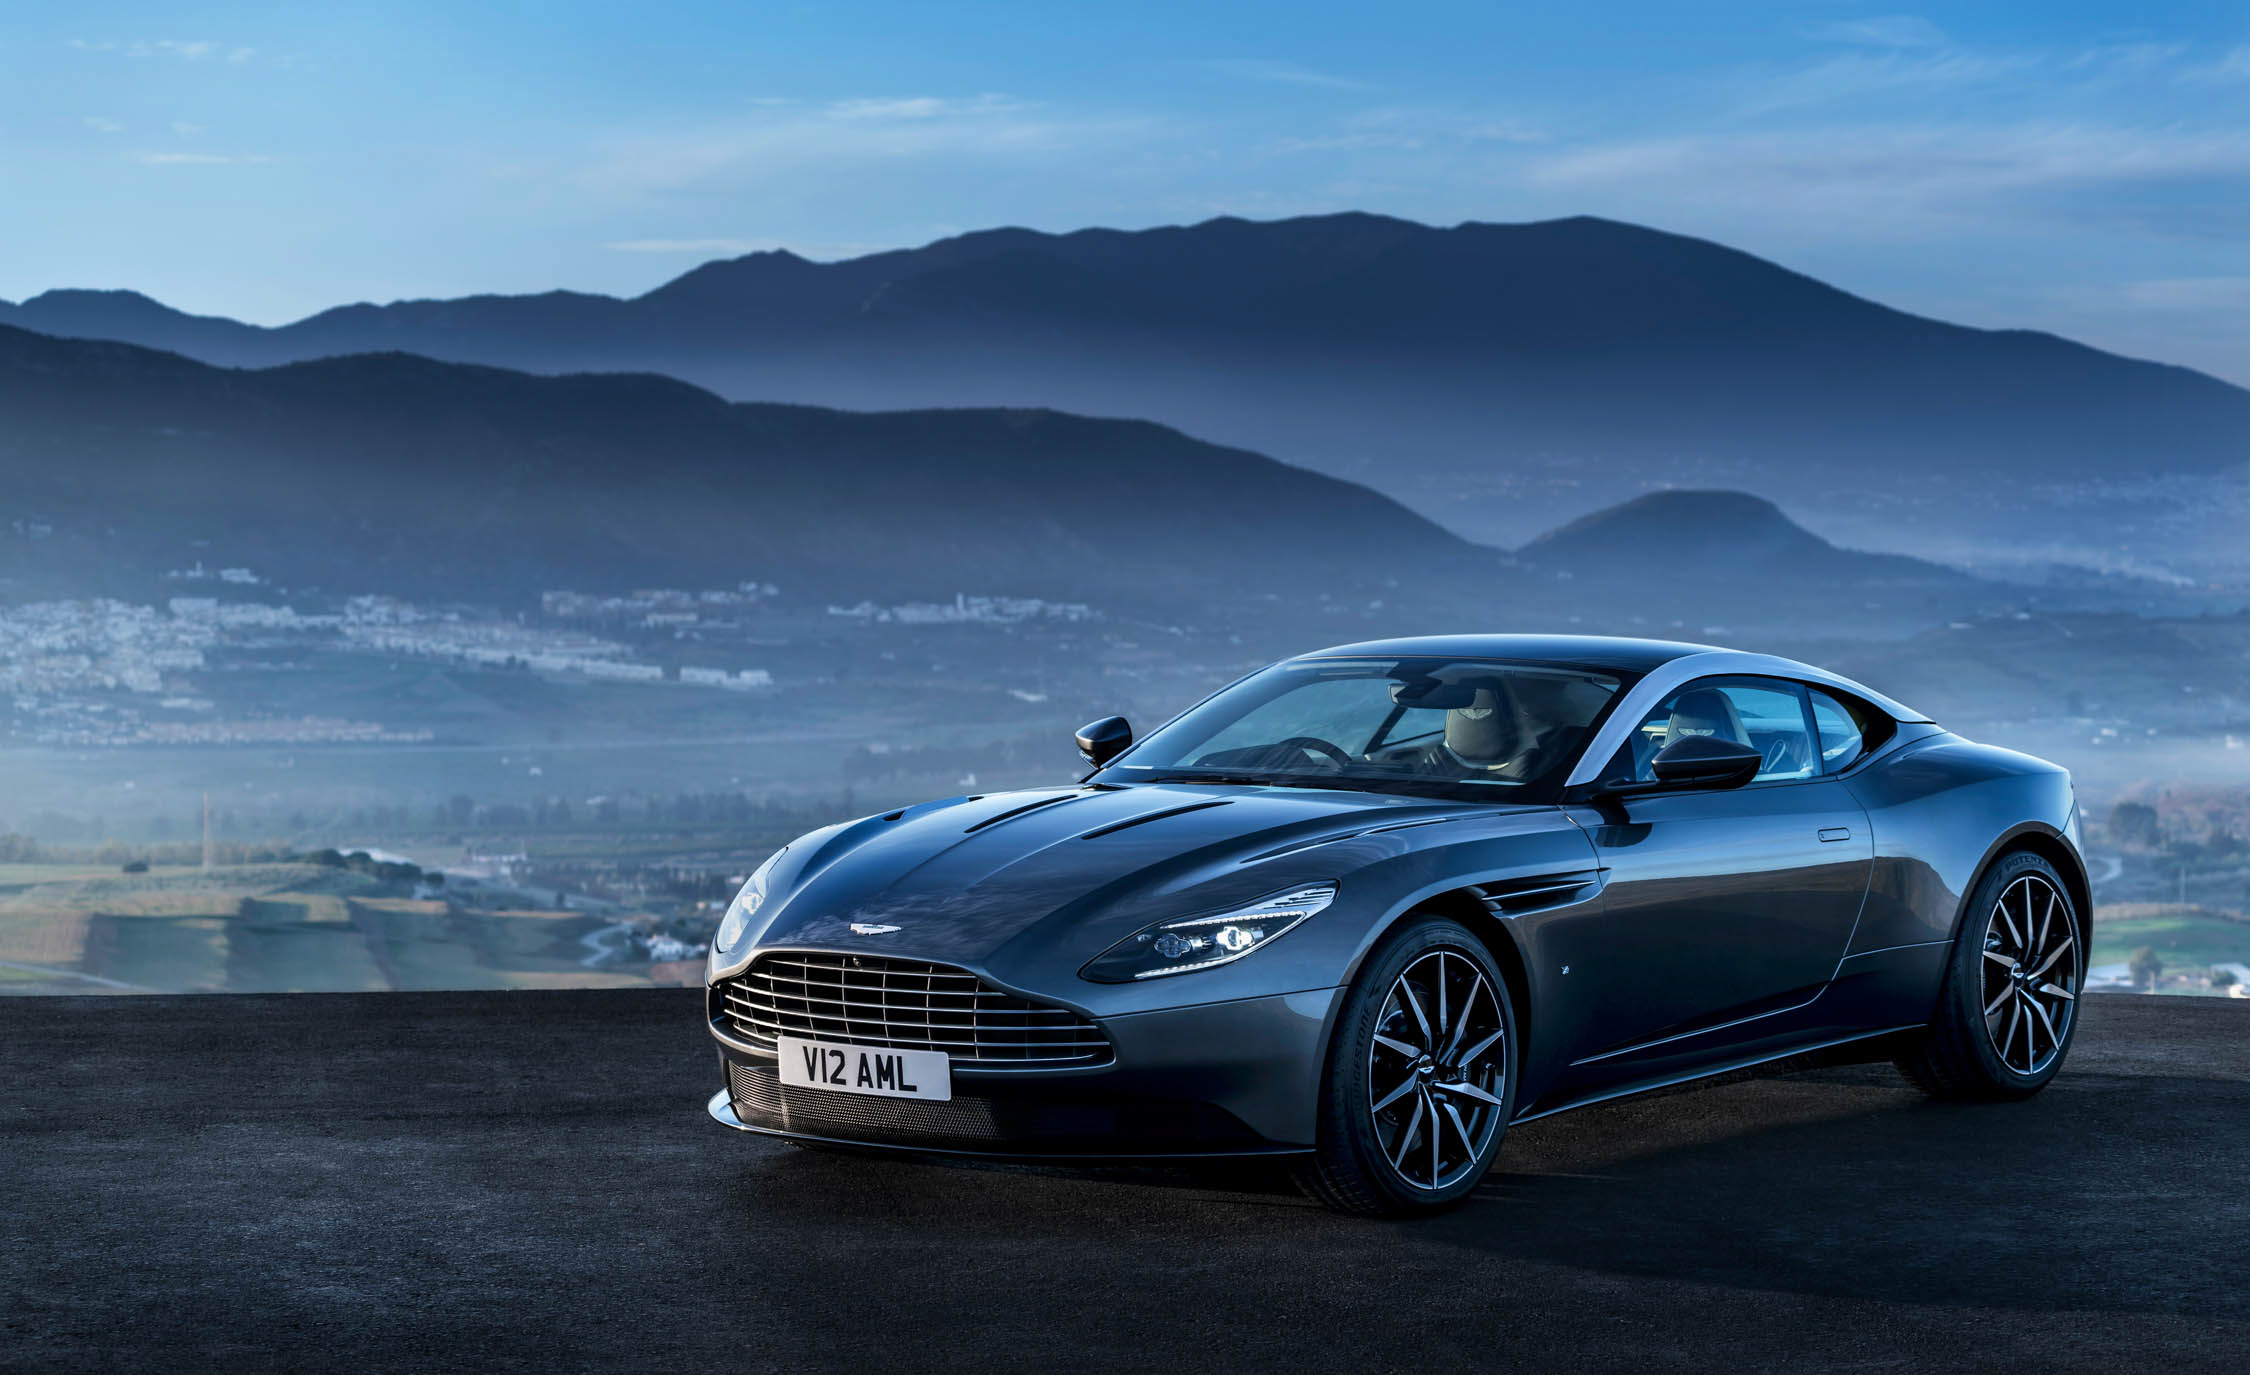 2017 Aston Martin Db11 Wallpaper Hd Photo (Photo 22 of 22)